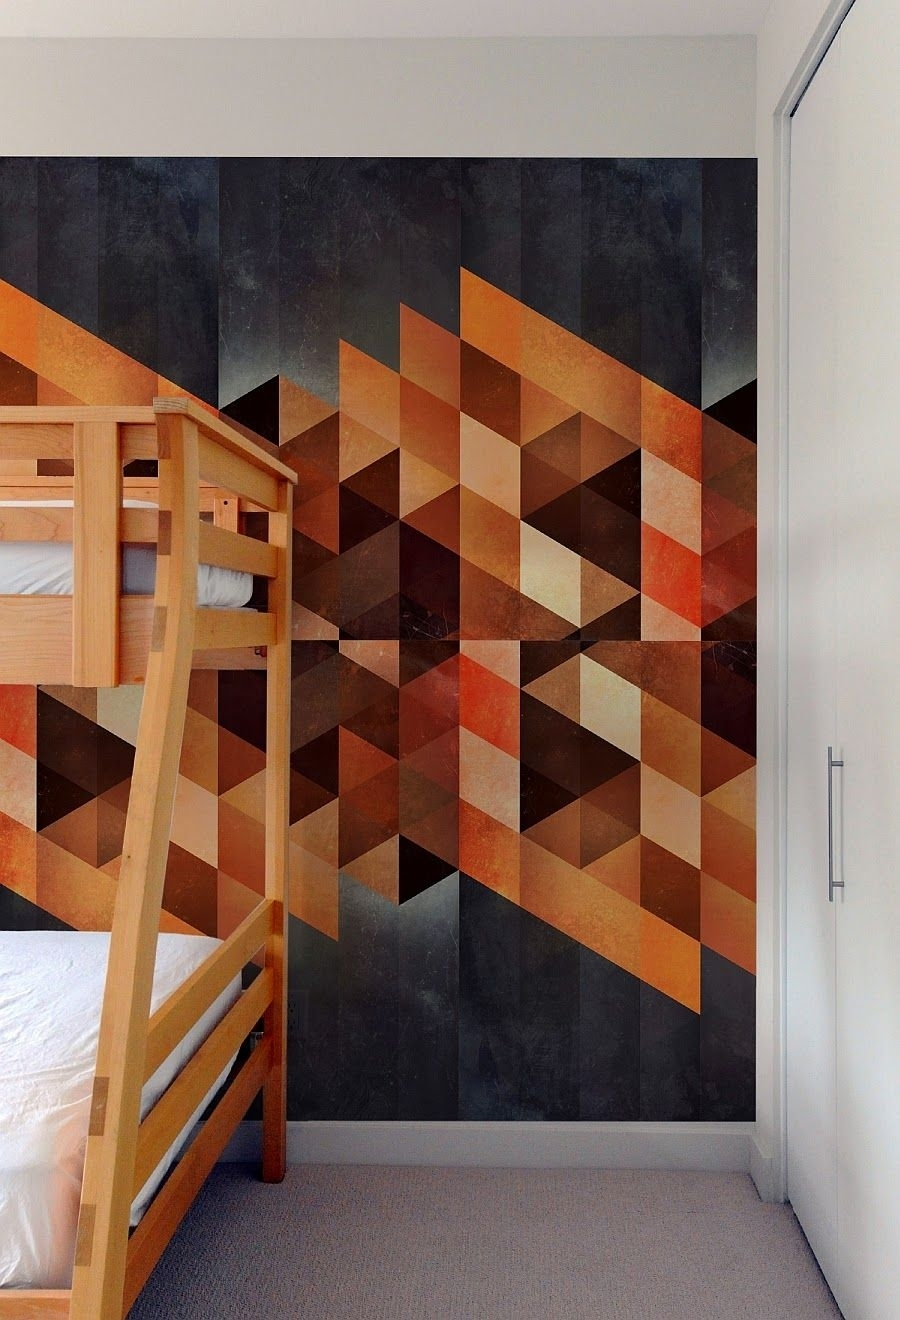 22 ???? ?????????????? ?????? ?? ????? | ????? | Pinterest | Wall Intended For Newest Geometric Shapes Wall Accents (View 7 of 15)